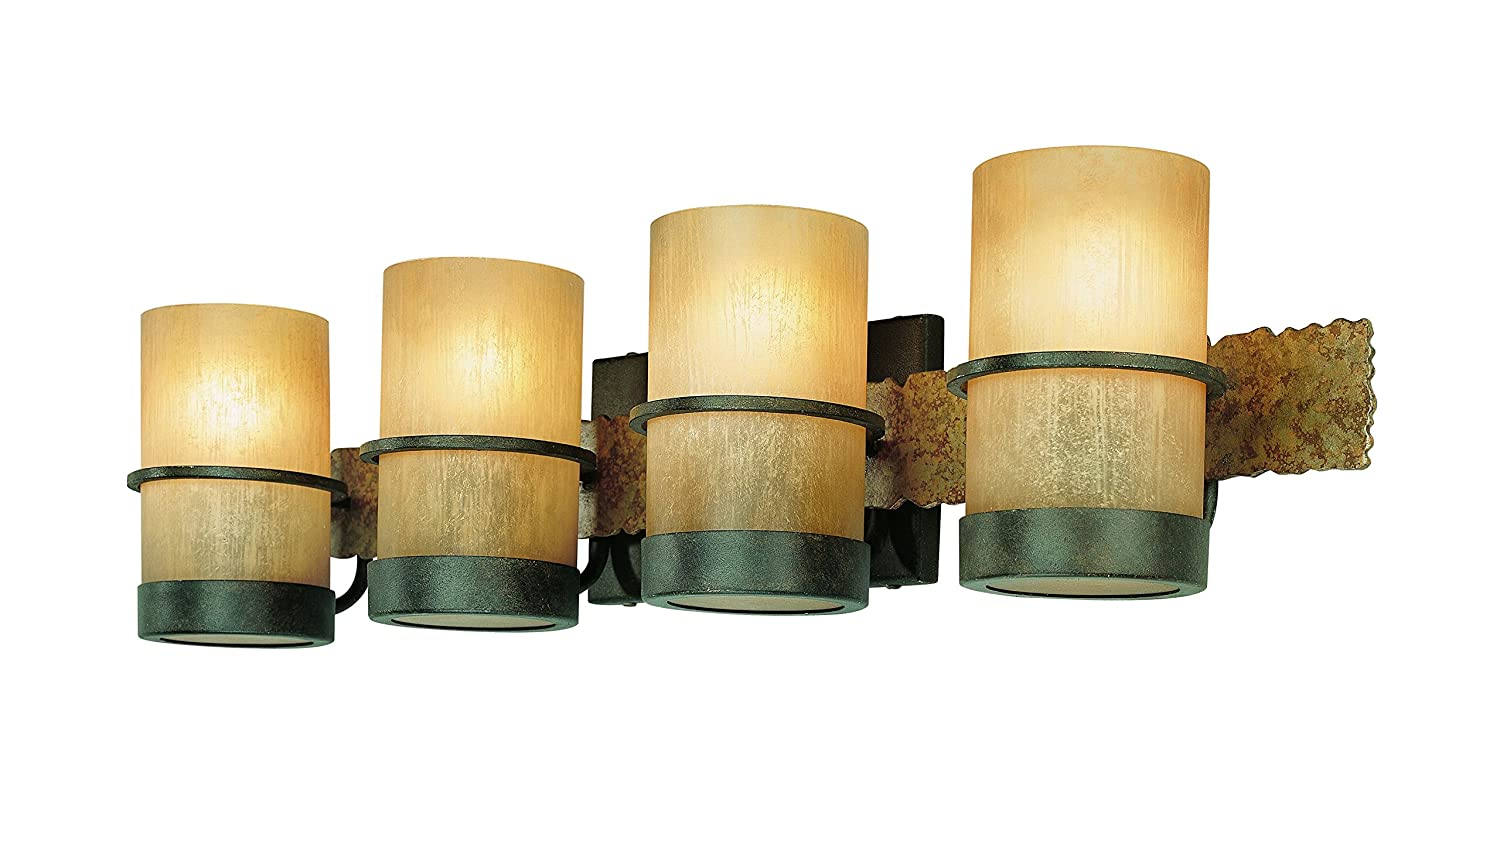 Captivating Amazon.com: Troy Lighting Bamboo 3 Light Vanity   Bamboo Bronze With  Natural Slate Finish And Bamboo Glass: Home Improvement Good Looking